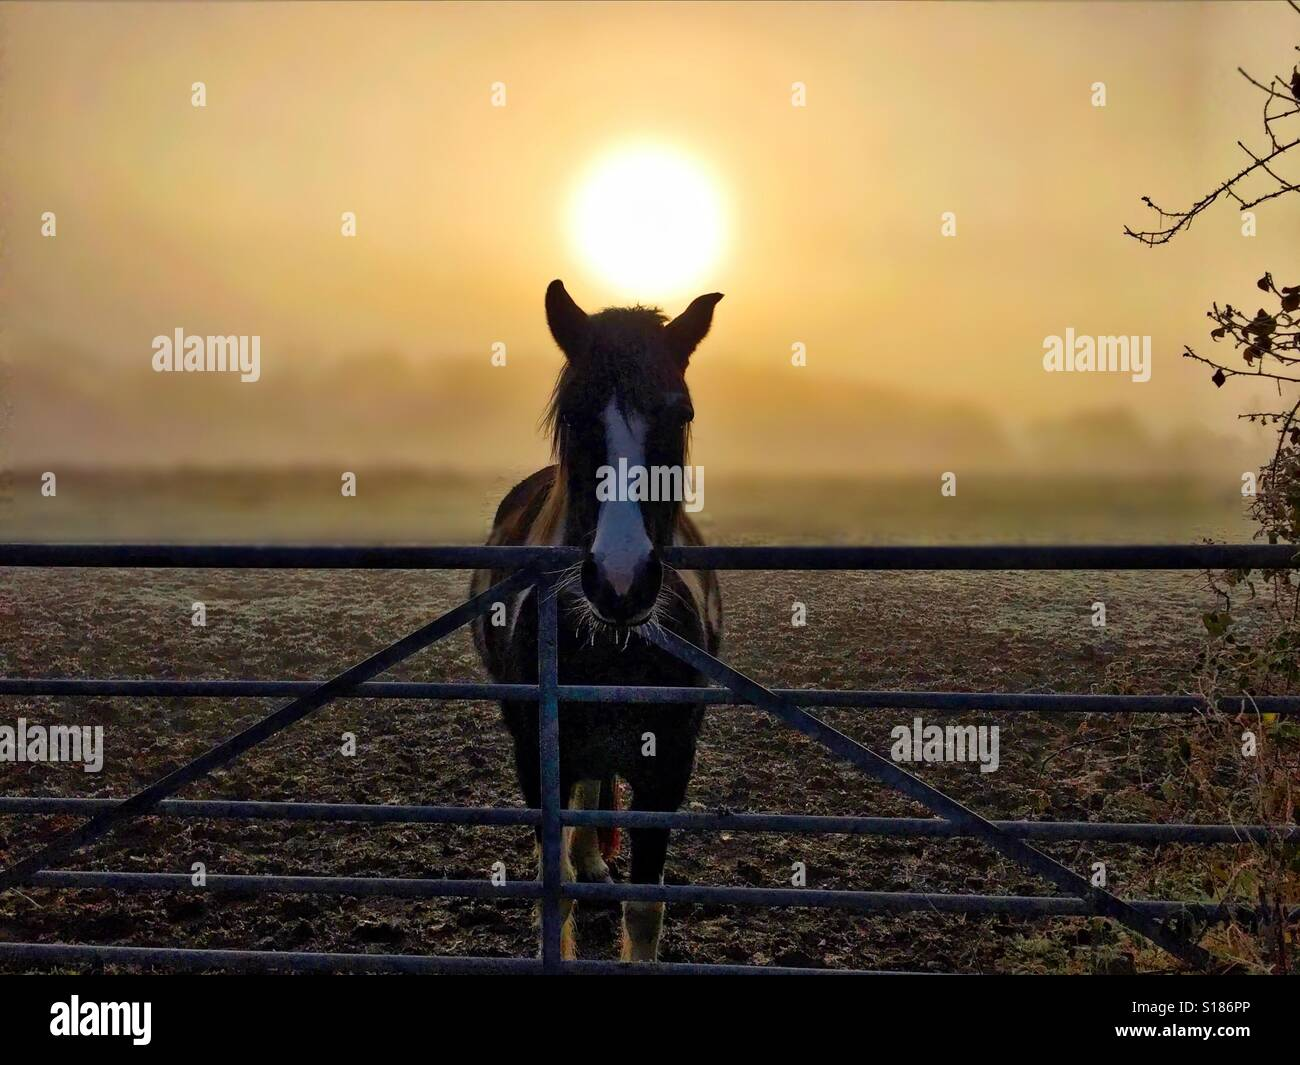 Cheval dans l'heure d'or Photo Stock